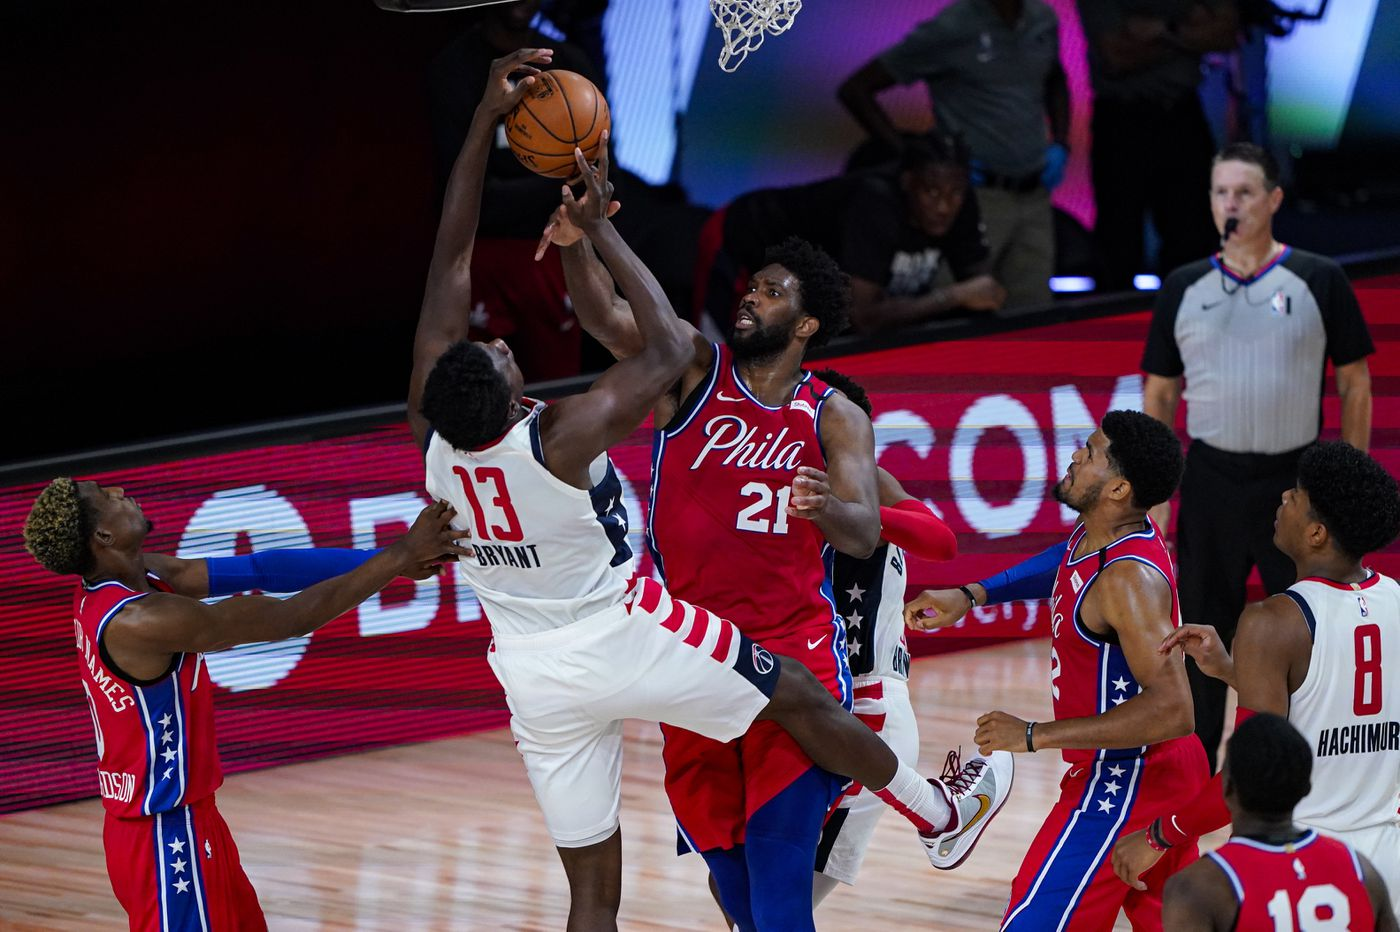 Joel Embiid came to Disney World to play, but Ben Simmons' knee injury looms larger for the Sixers | David Murphy